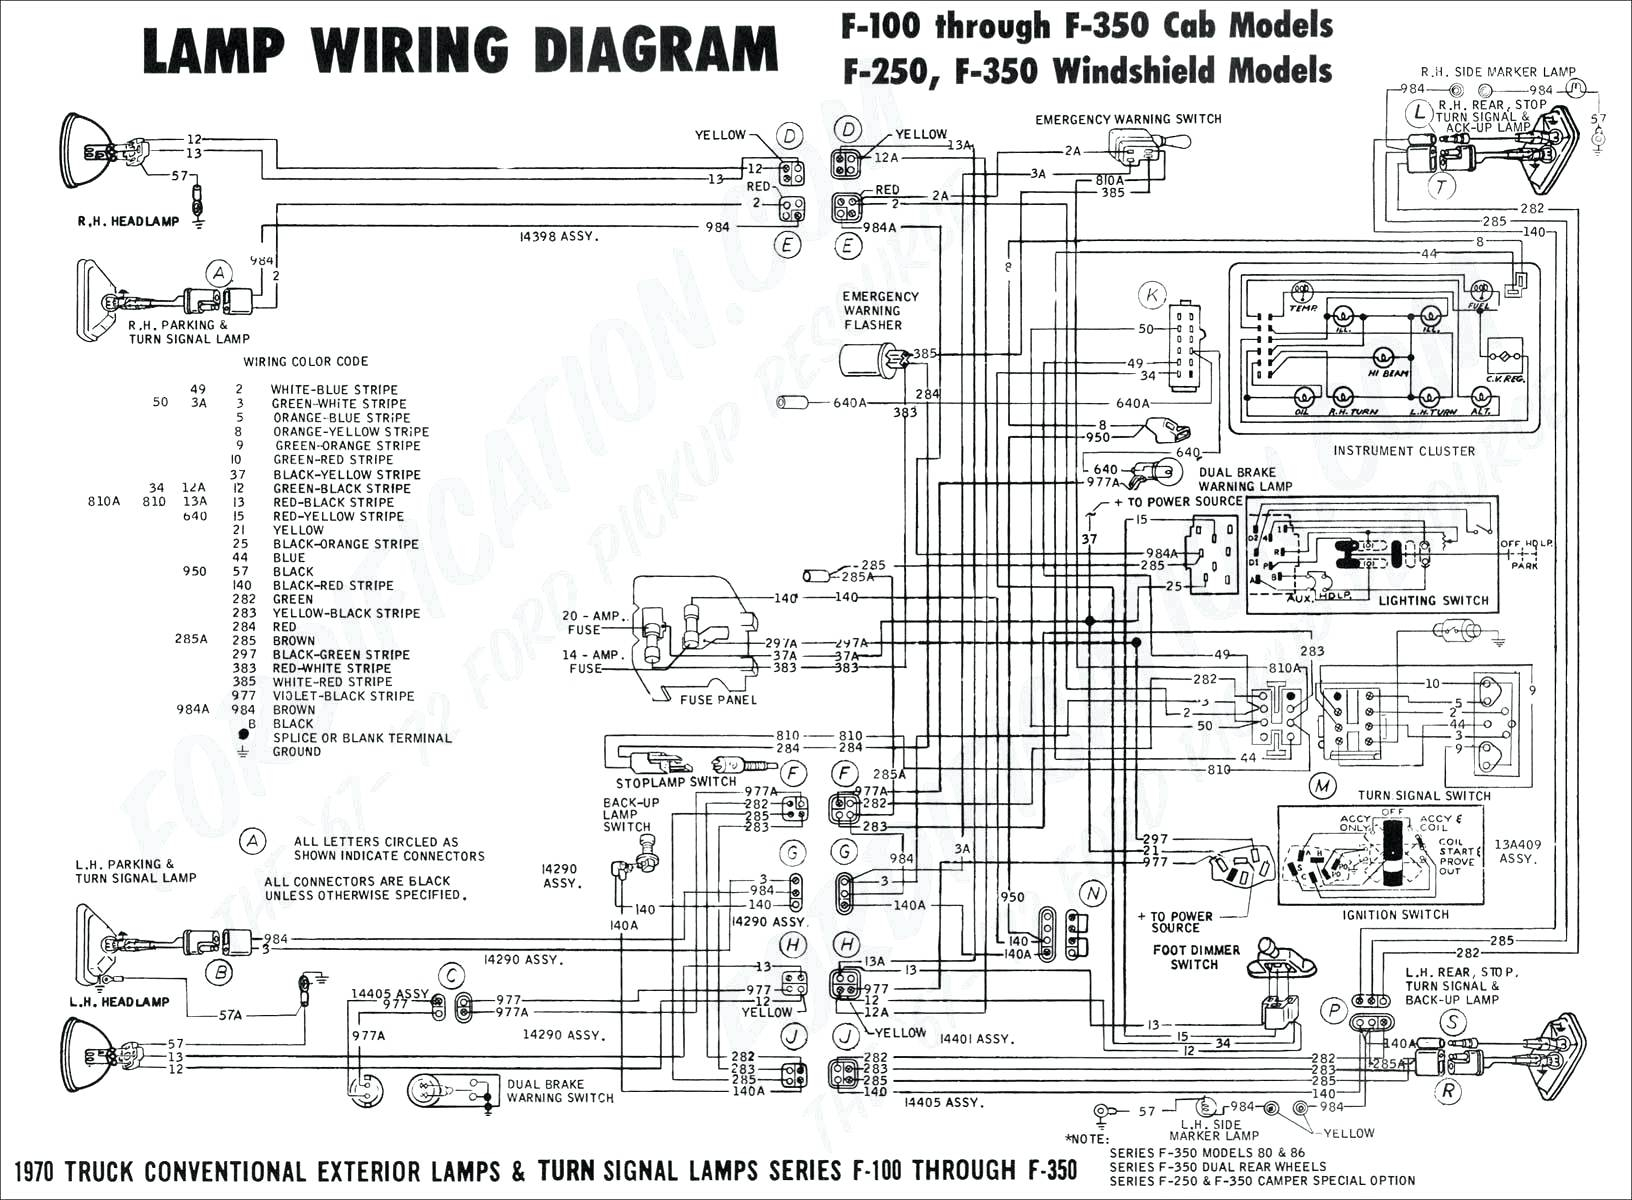 03 Dodge Ram 2500 Trailer Wiring Diagram